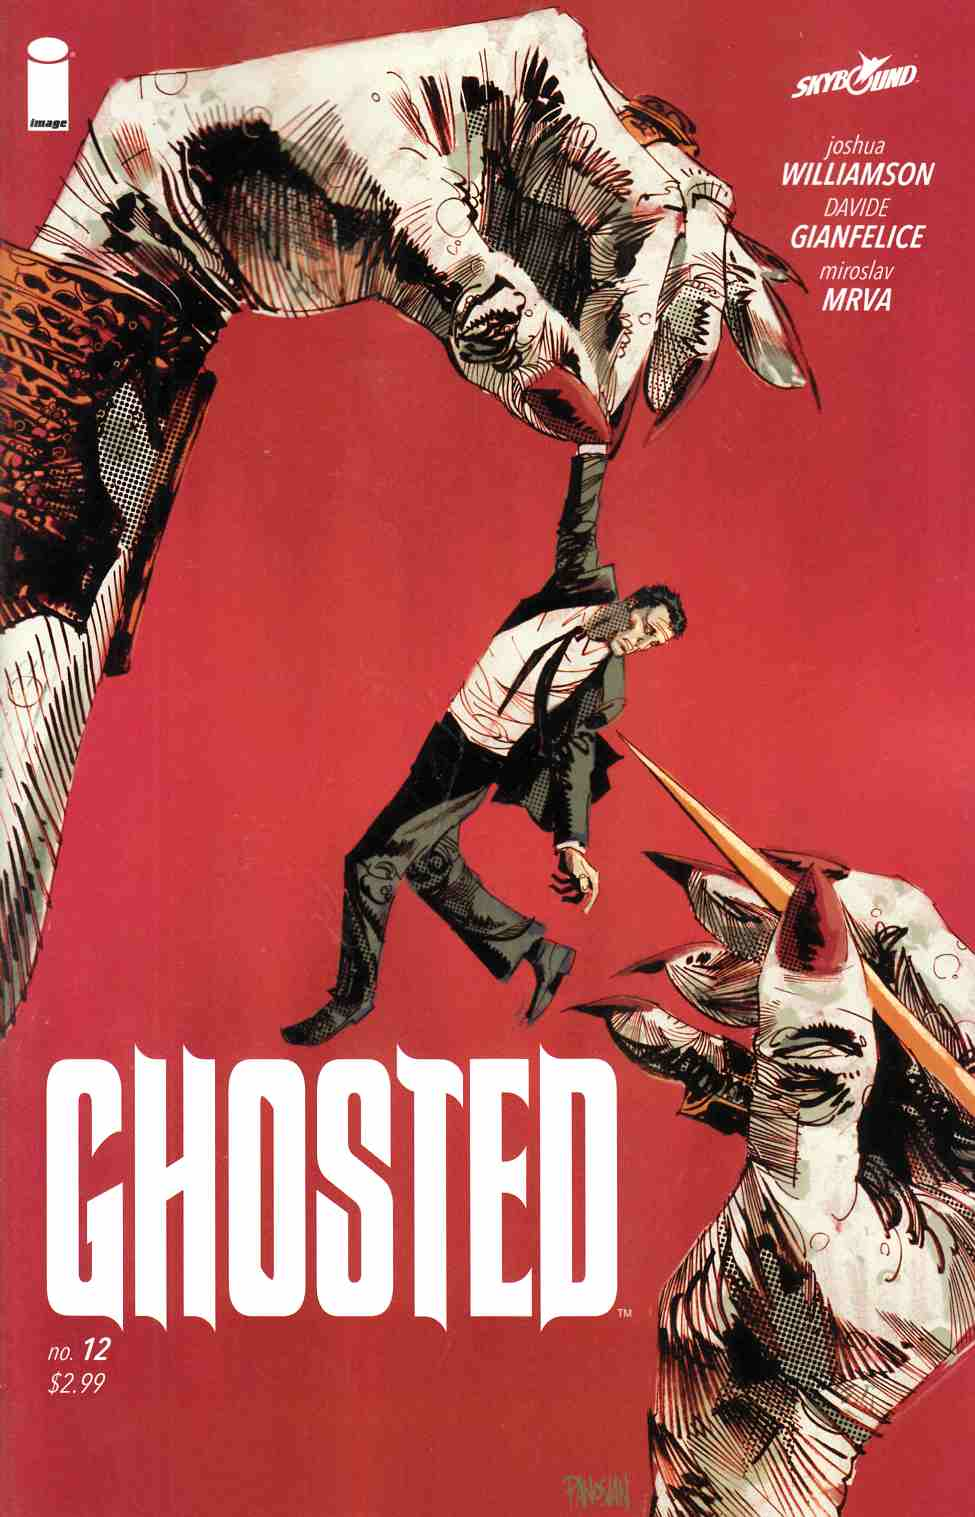 Ghosted #12 [Image Comic] THUMBNAIL